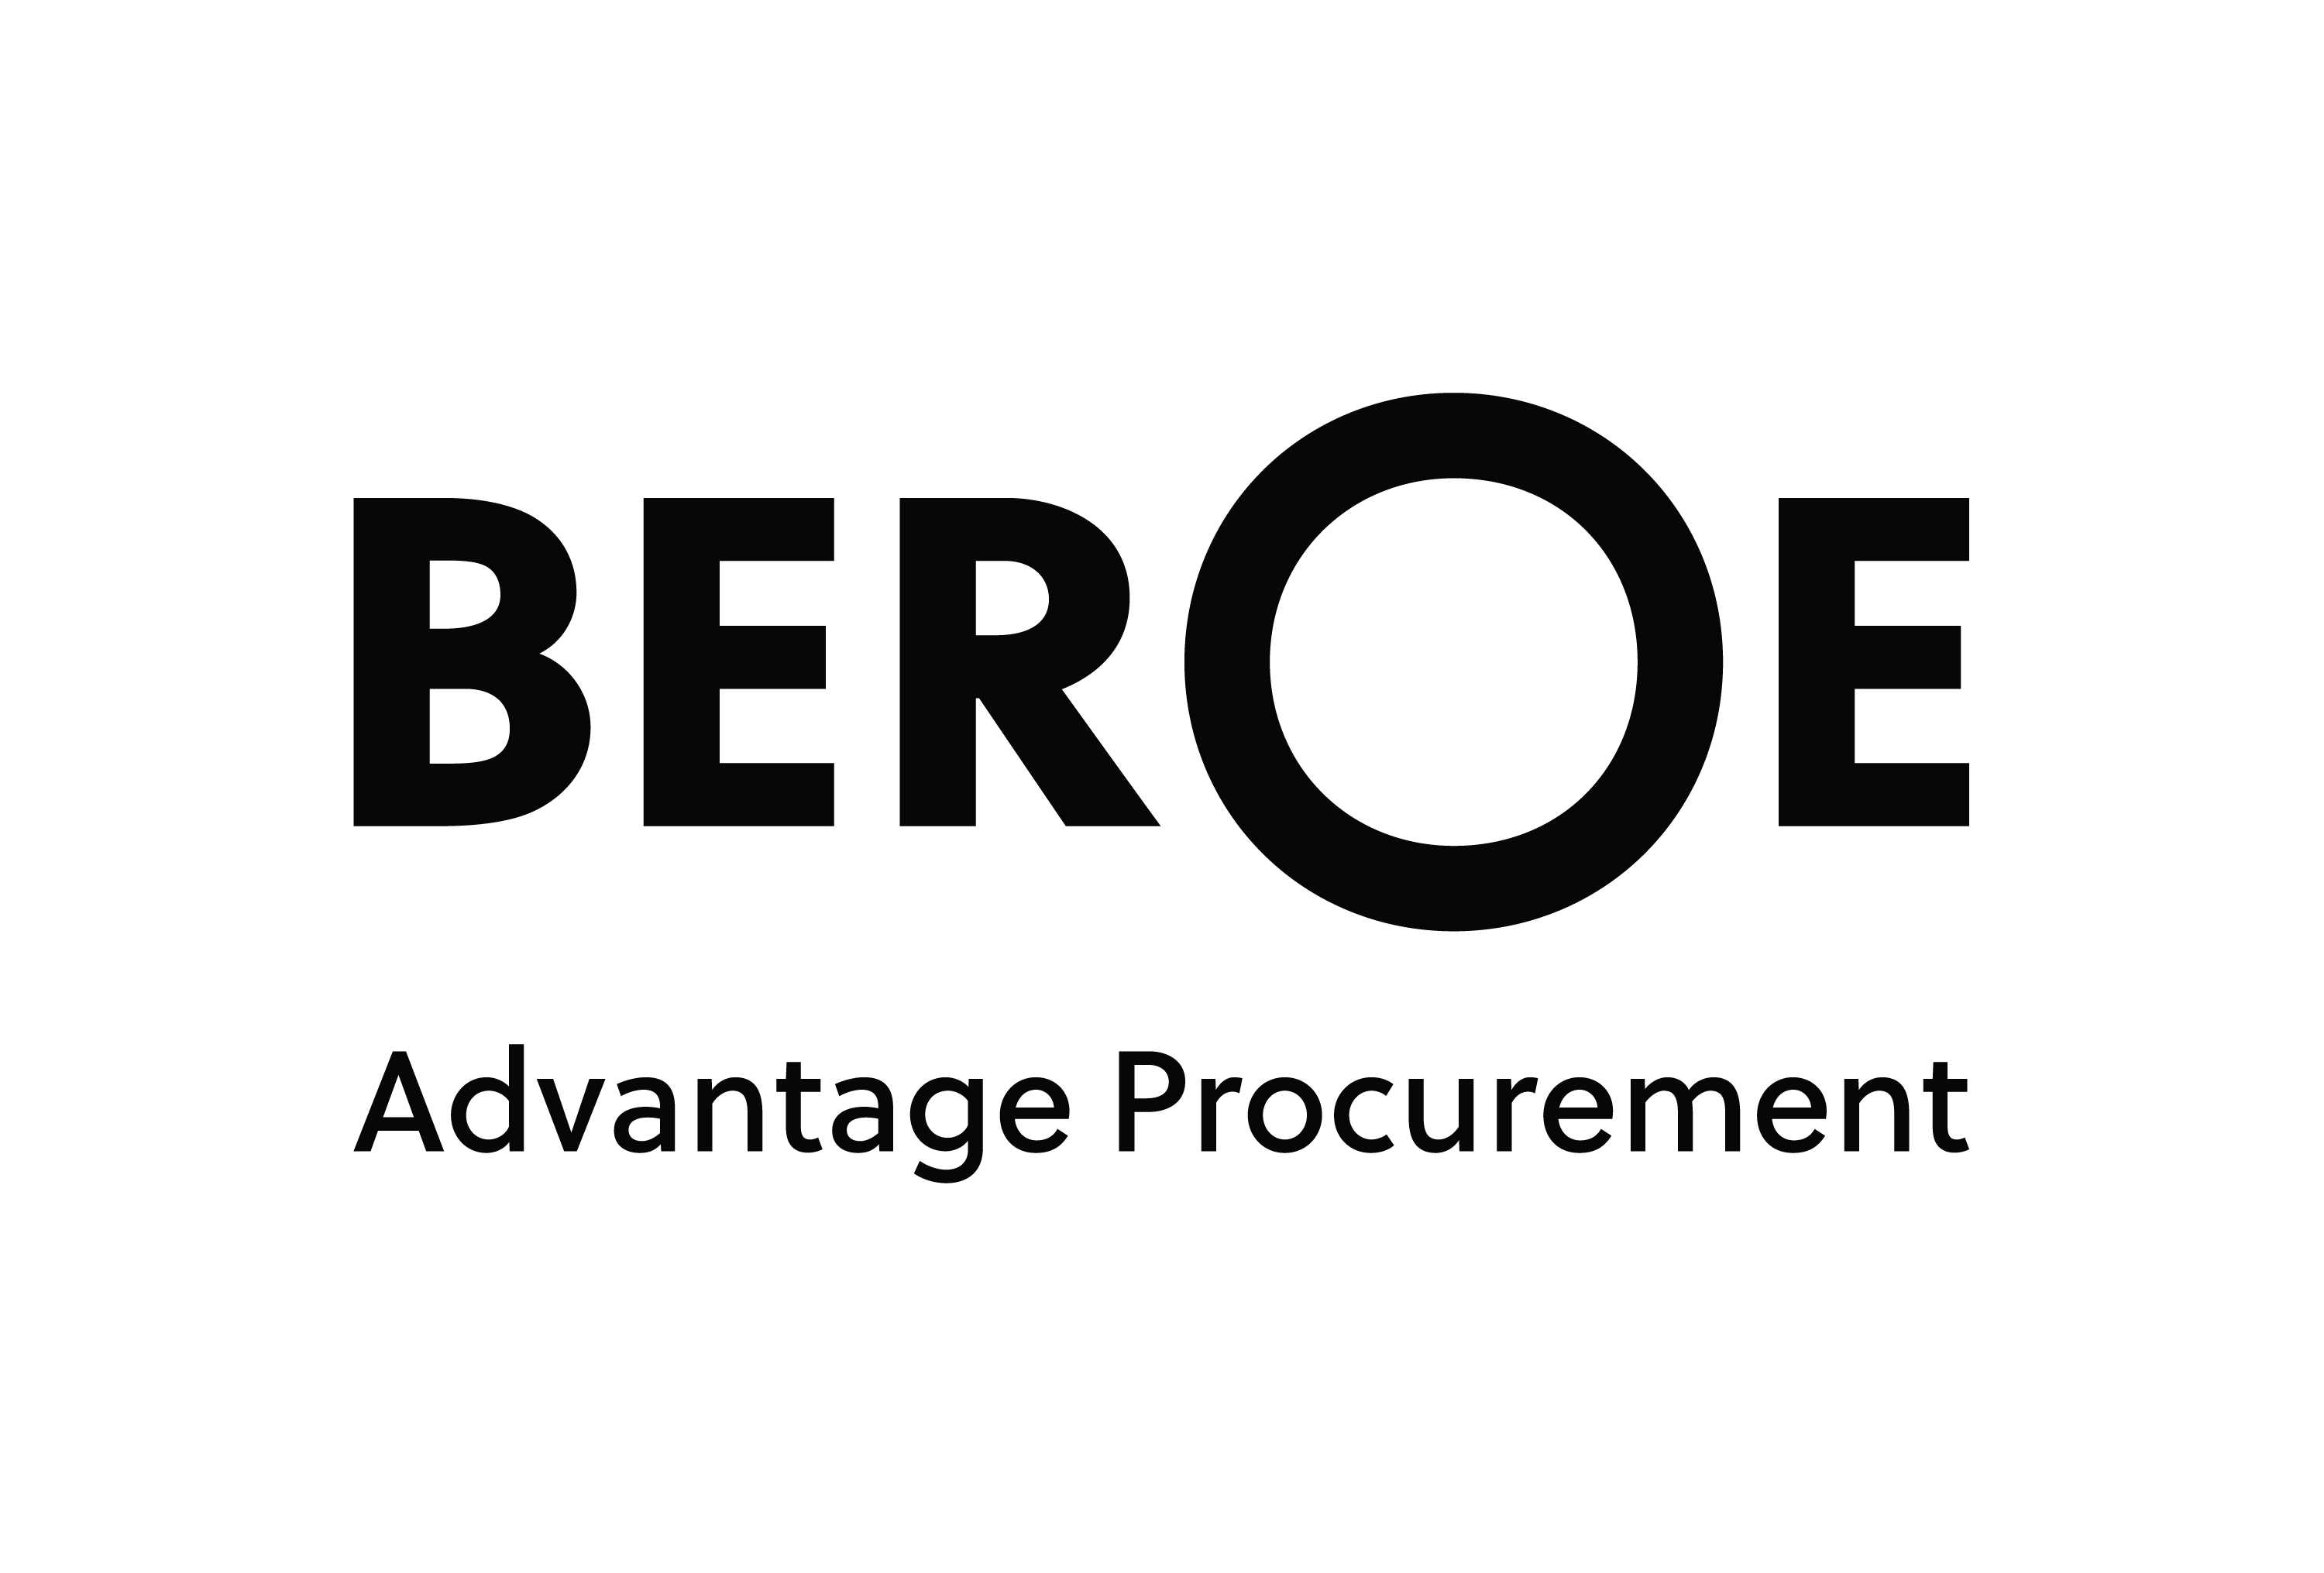 Beroe joins CIPS as a knowledge partner for Market Intelligence & Commodities